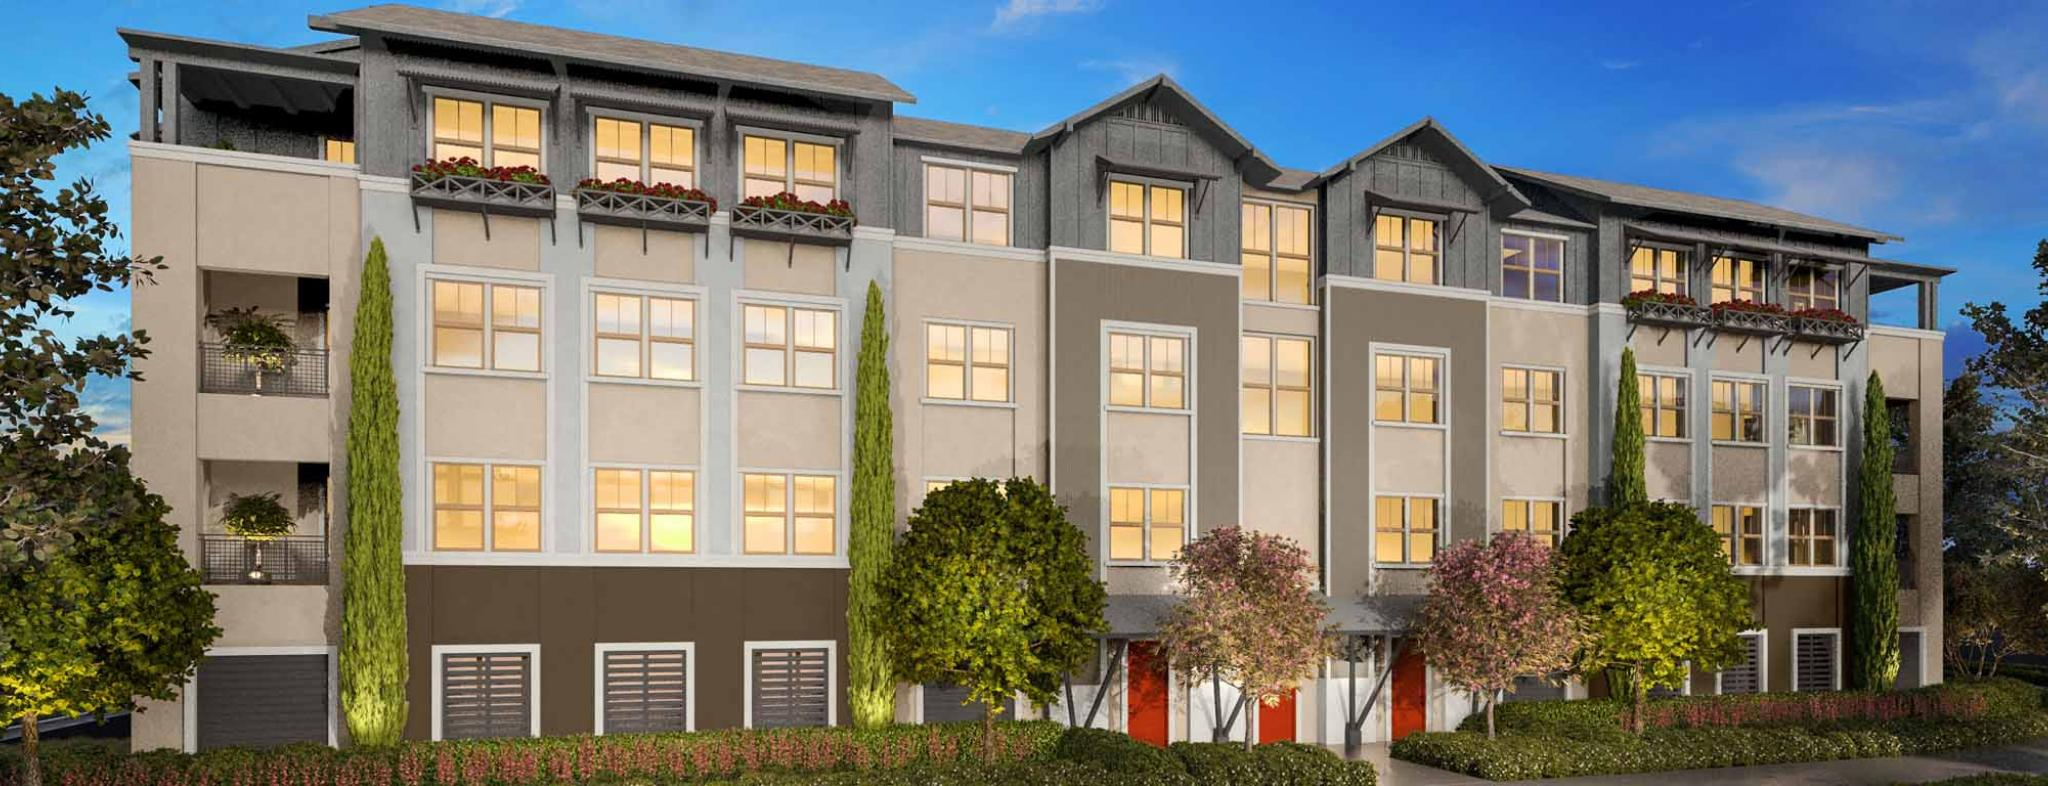 The Cannery Completes Sales at Two Neighborhoods, Breaks Ground and Prepares for Sales Release at Final Collection of Unique Single-Story Residences